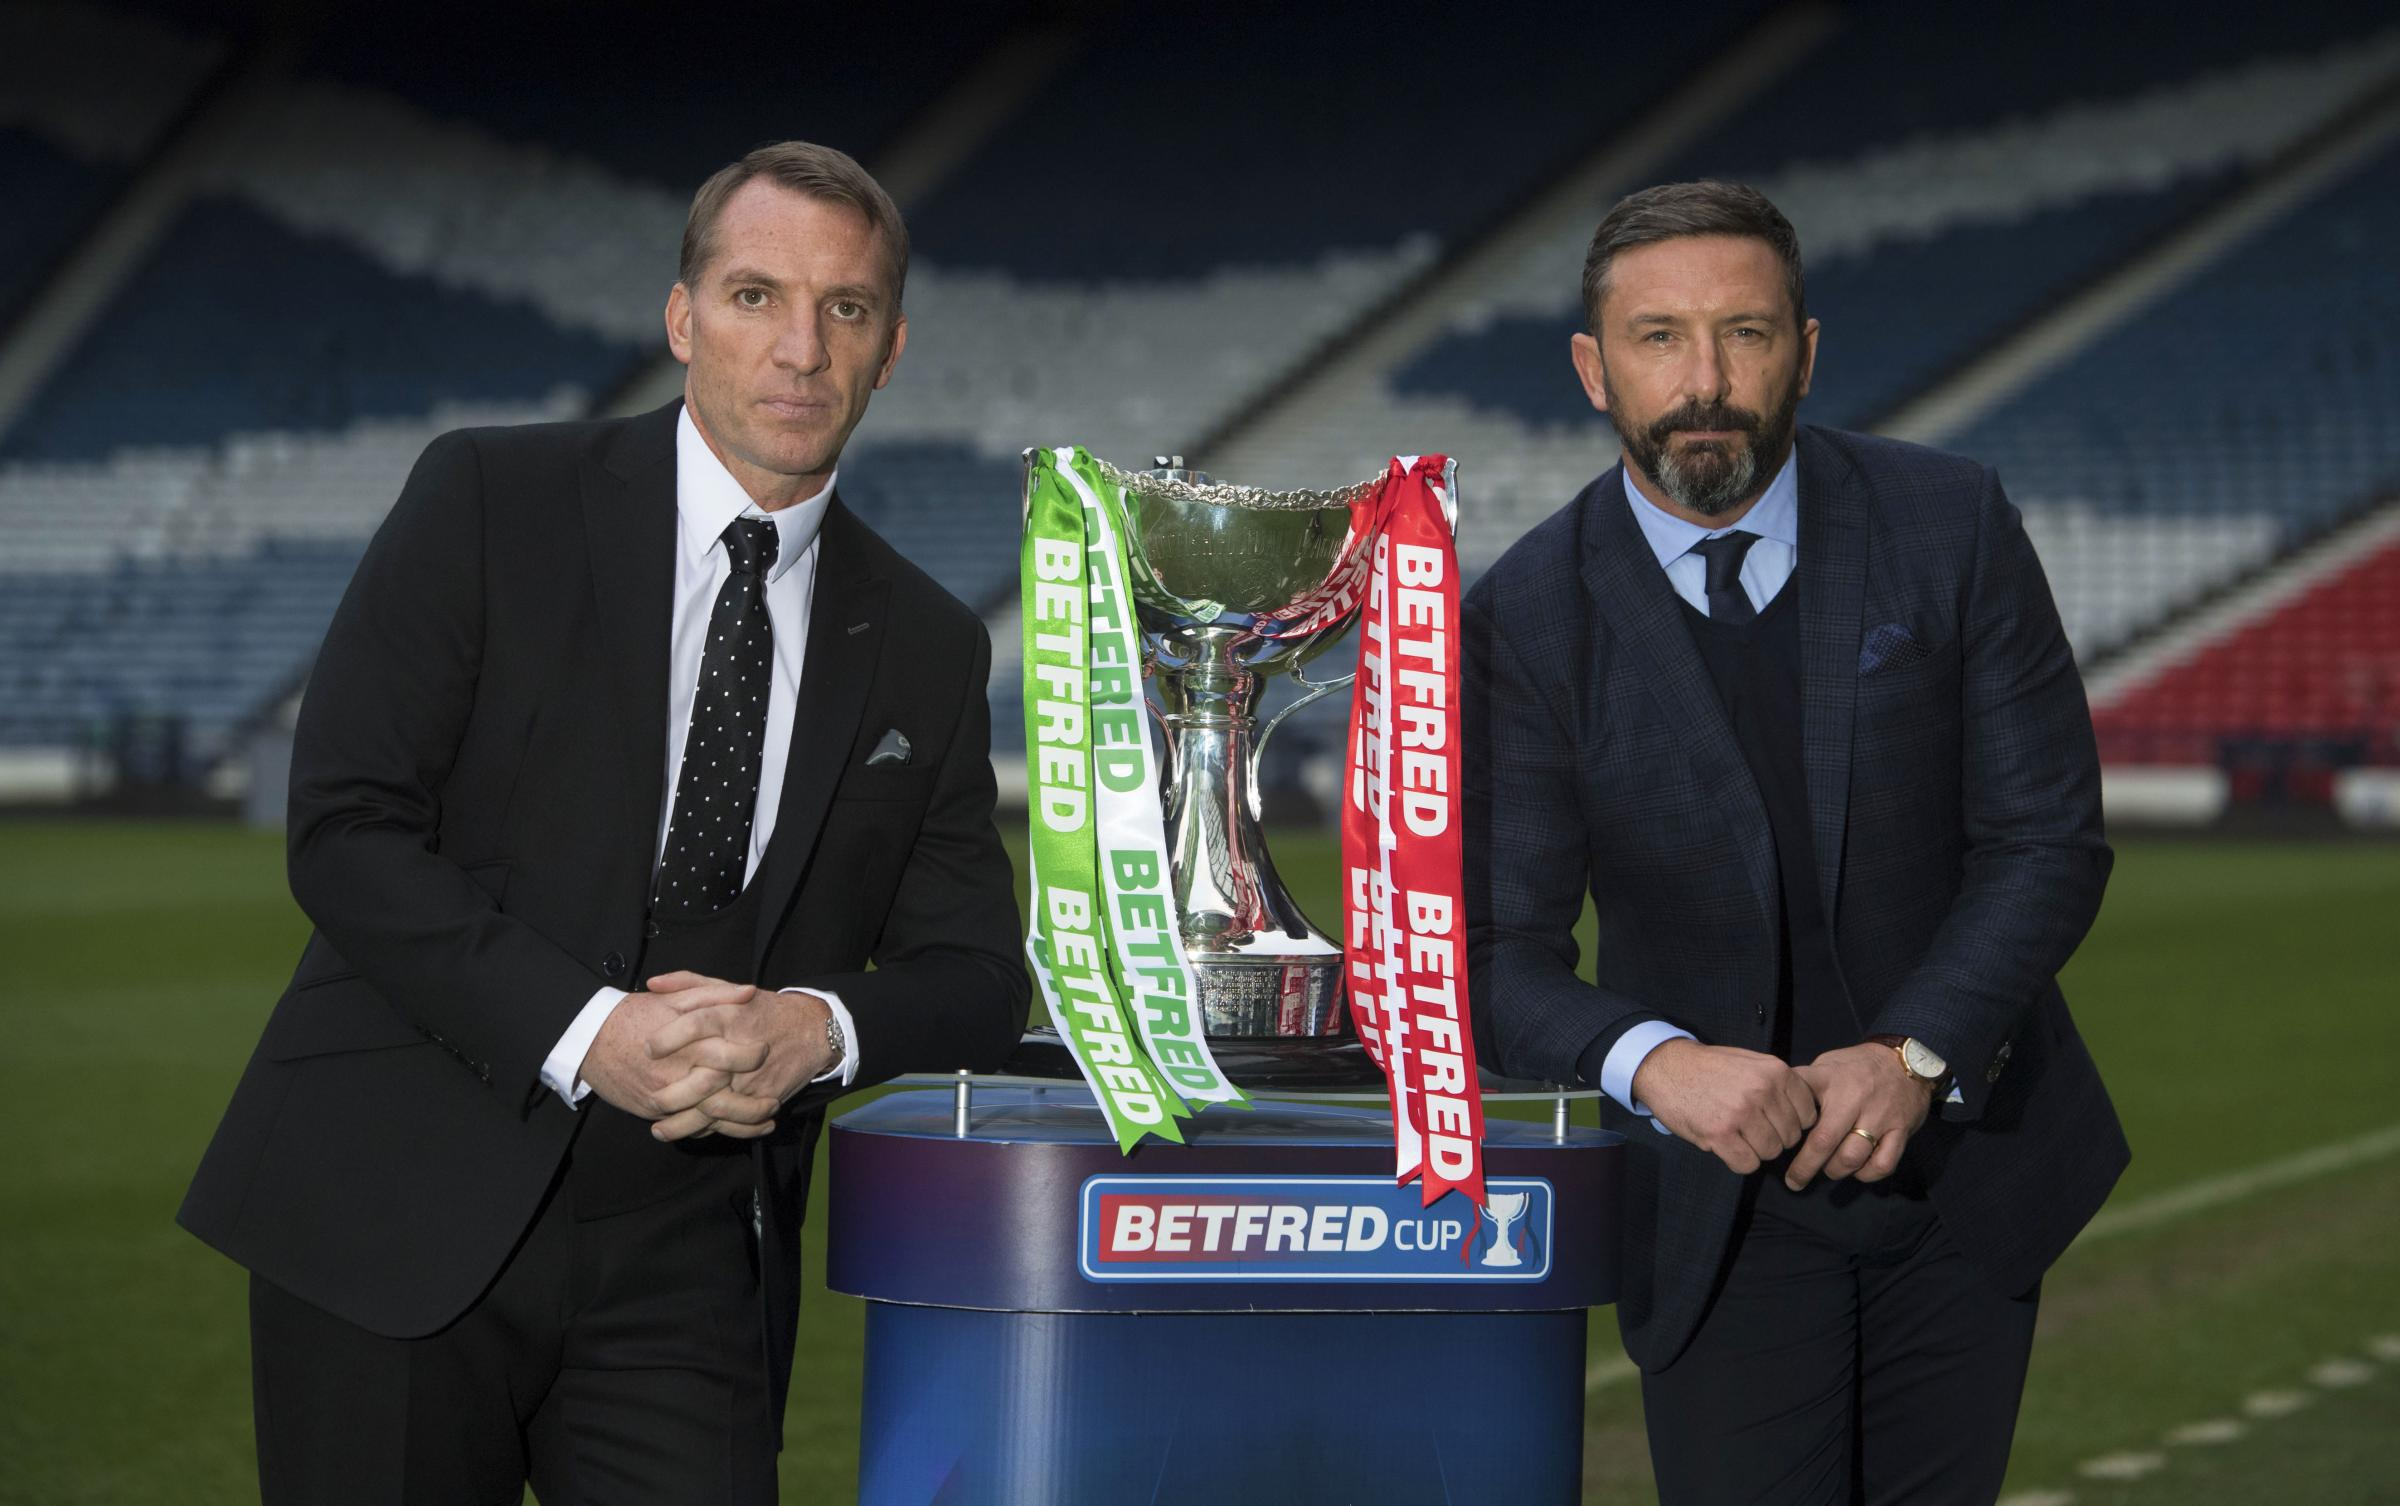 26/11/18.HAMPDEN PARK - GLASGOW.Celtic manager Brendan Rodgers (L) and Aberdeen manager Derek McInnes preview the Betfred Cup final this weekend..